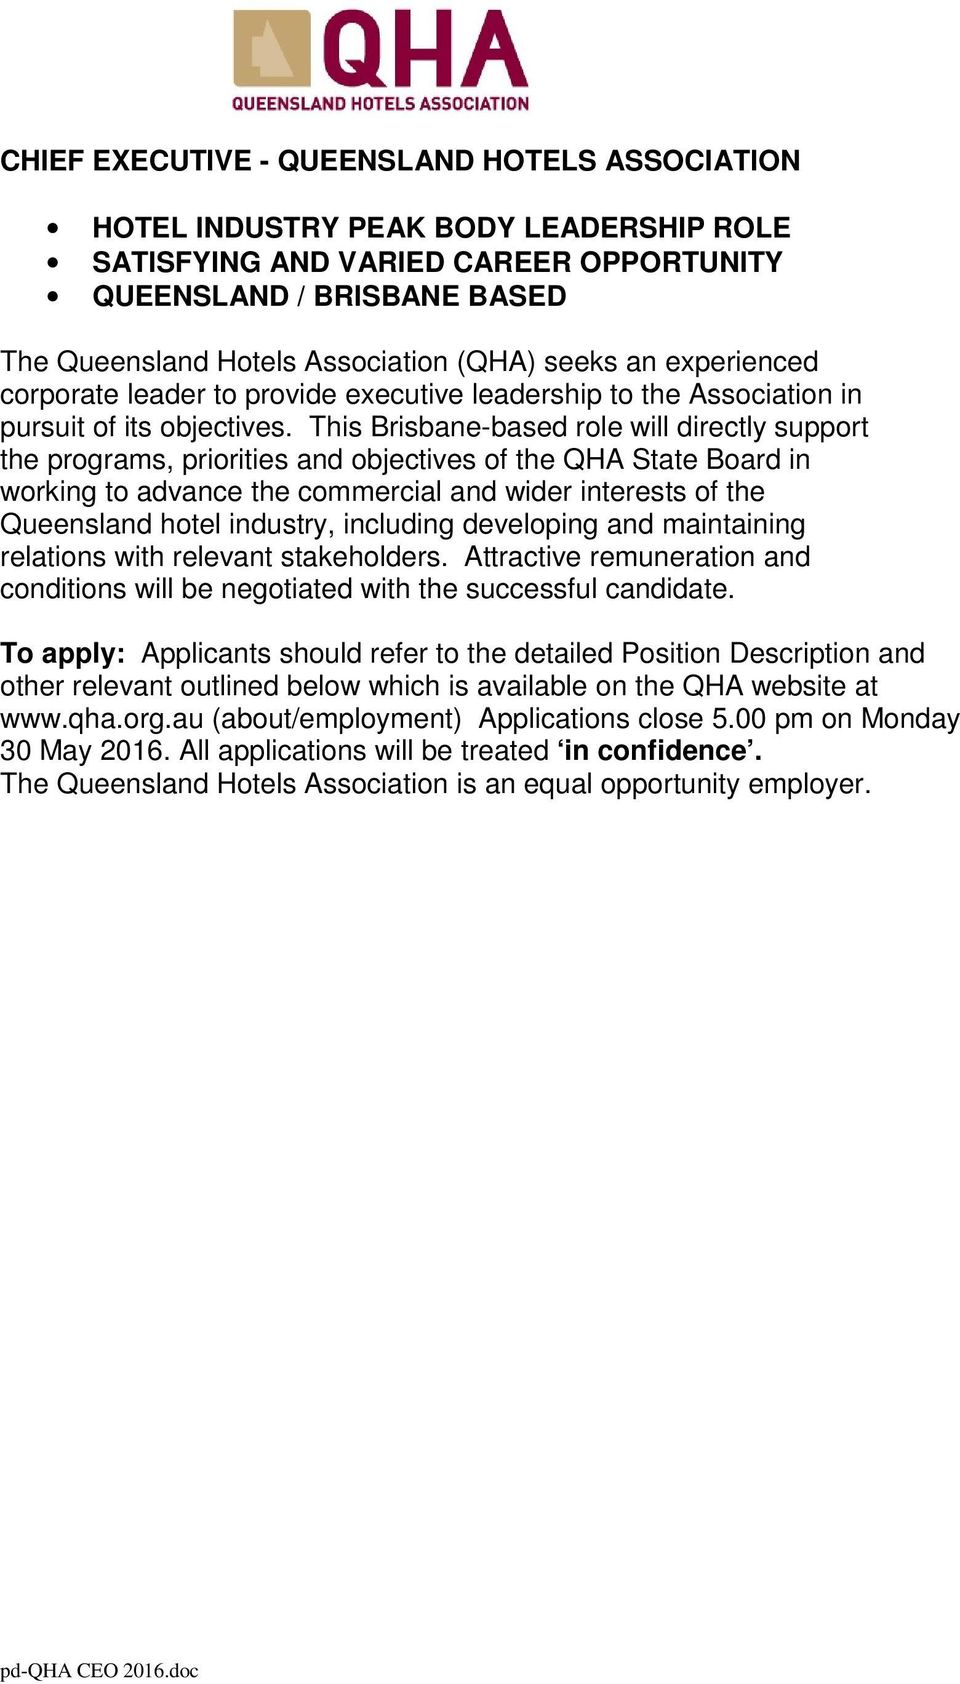 This Brisbane-based role will directly support the programs, priorities and objectives of the QHA State Board in working to advance the commercial and wider interests of the Queensland hotel